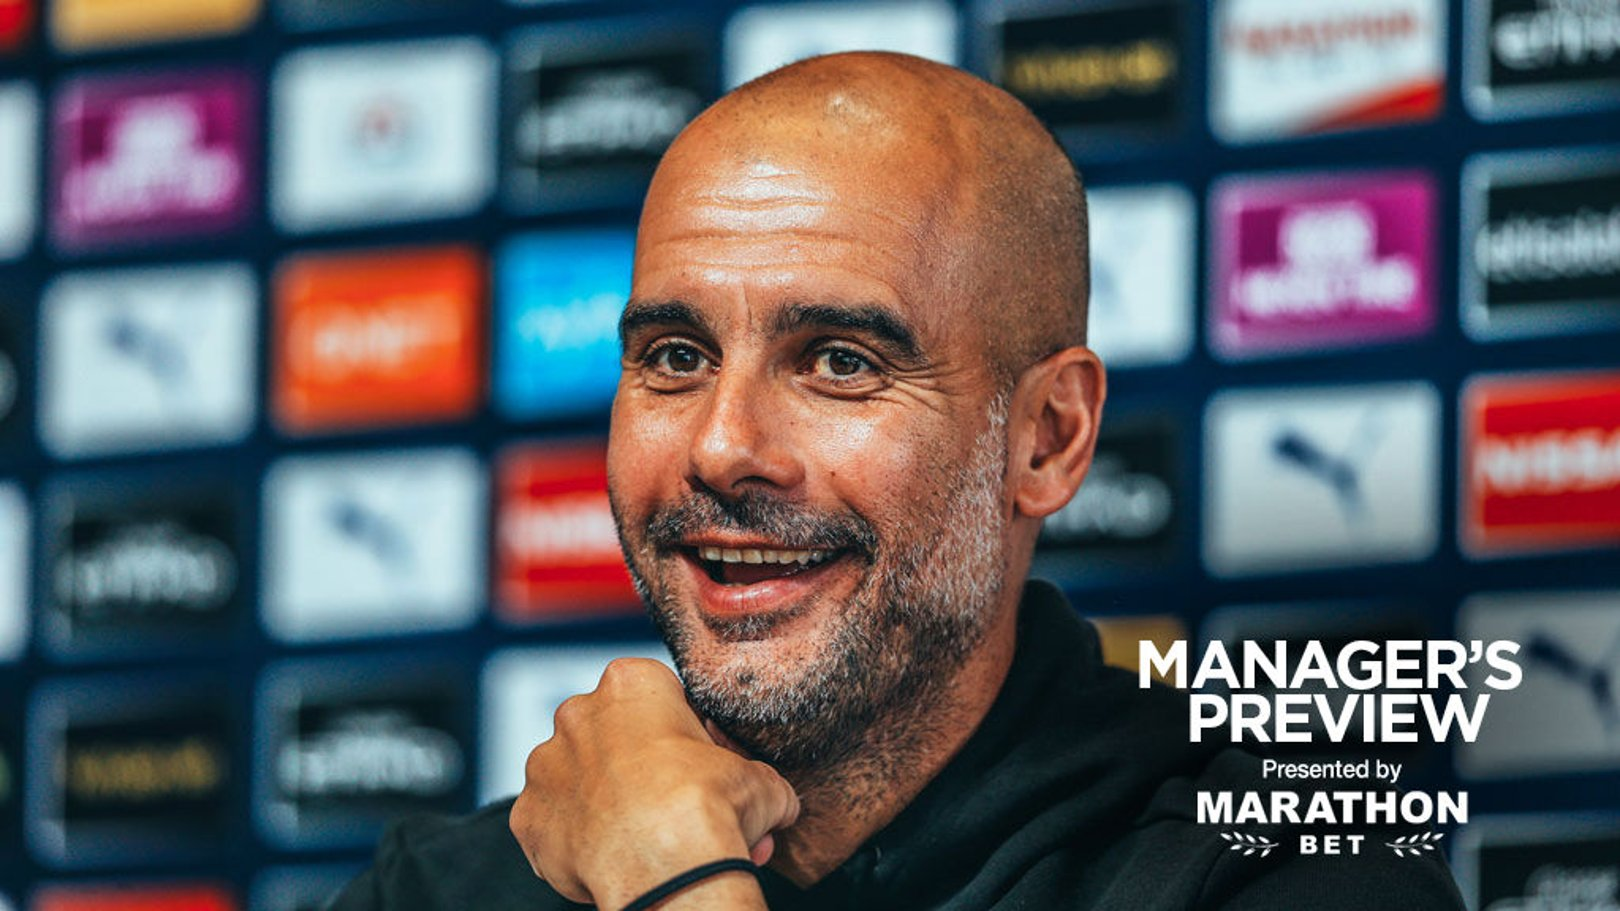 PEP TALK: The boss has given us an update ahead of Saturday's game